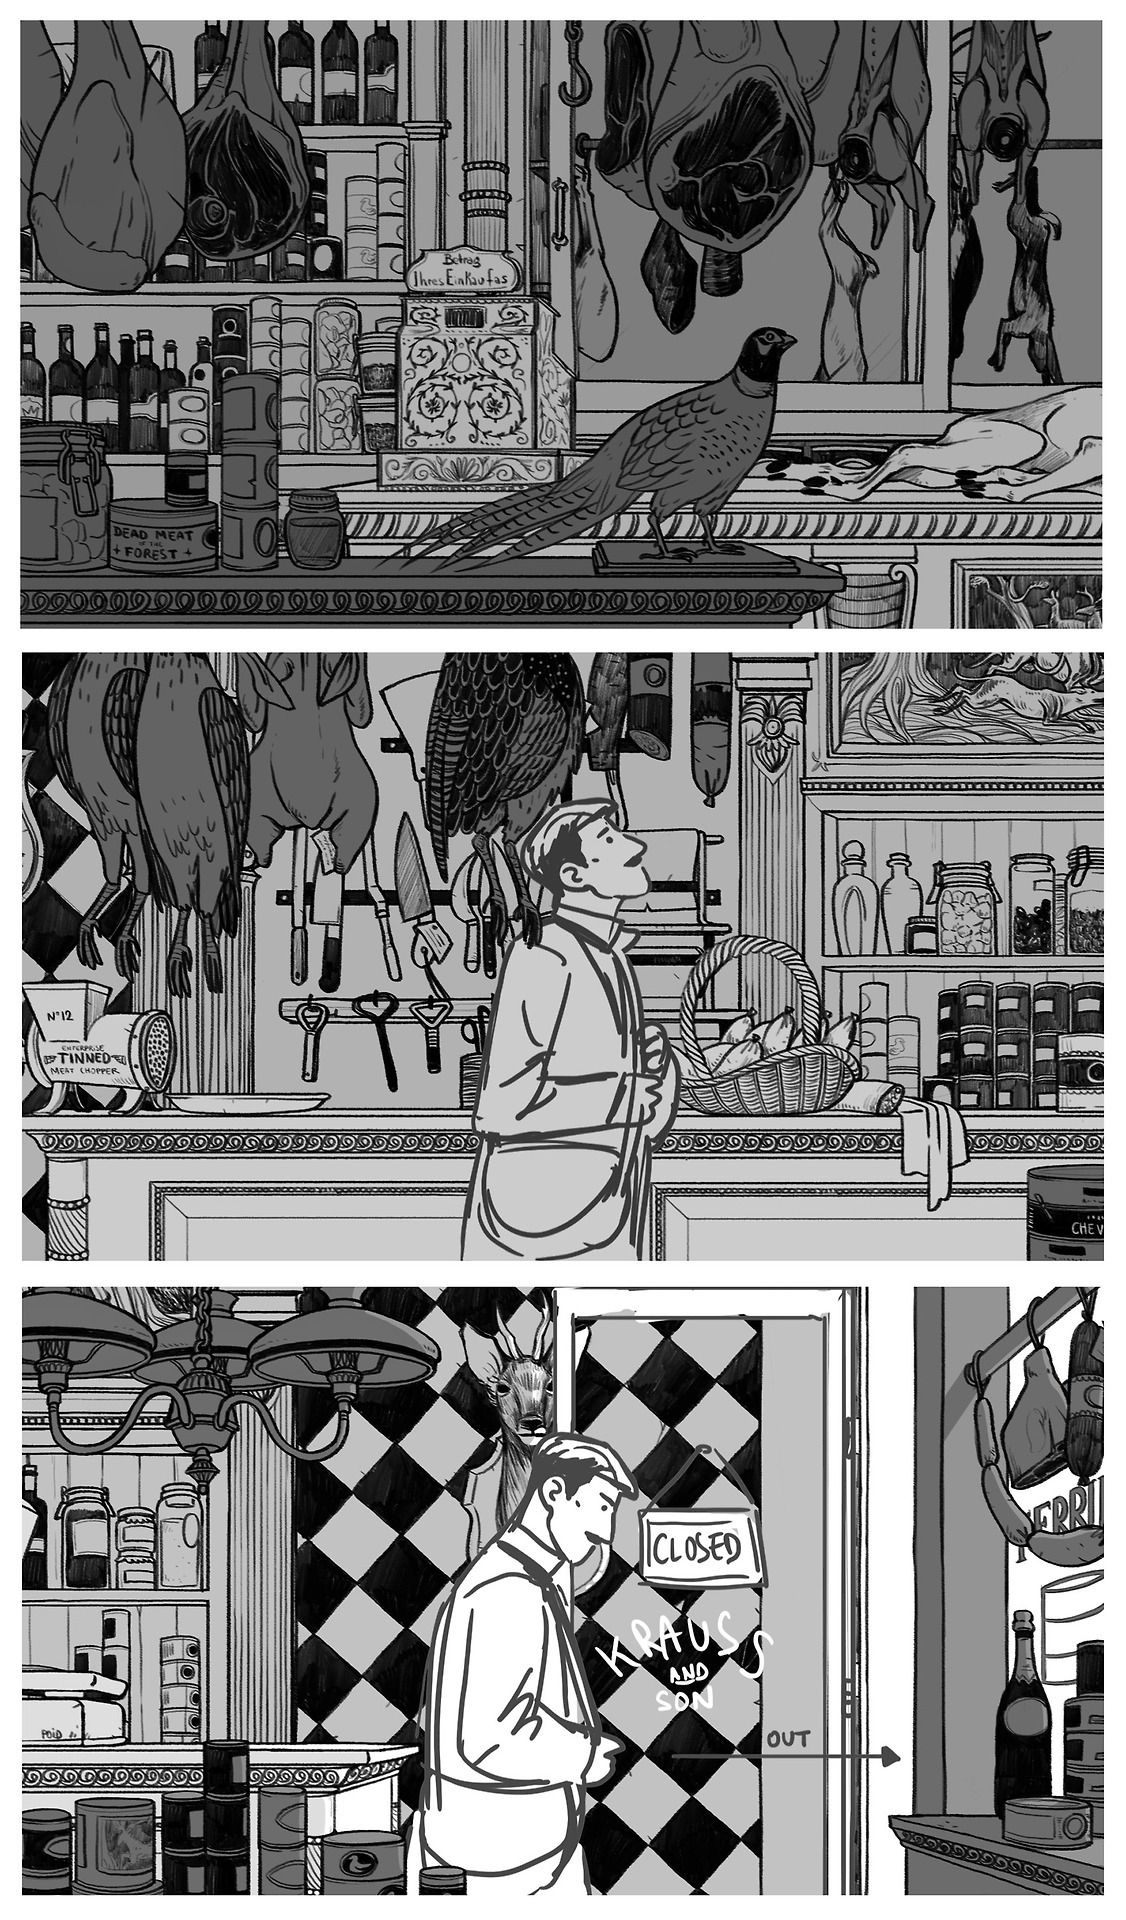 Wow! School work! Super nice layout exercice with Rémi Chayé, director of Long Way North - #background #butcher #dandy #deadmeatoftheforest #design #gobelins #layout